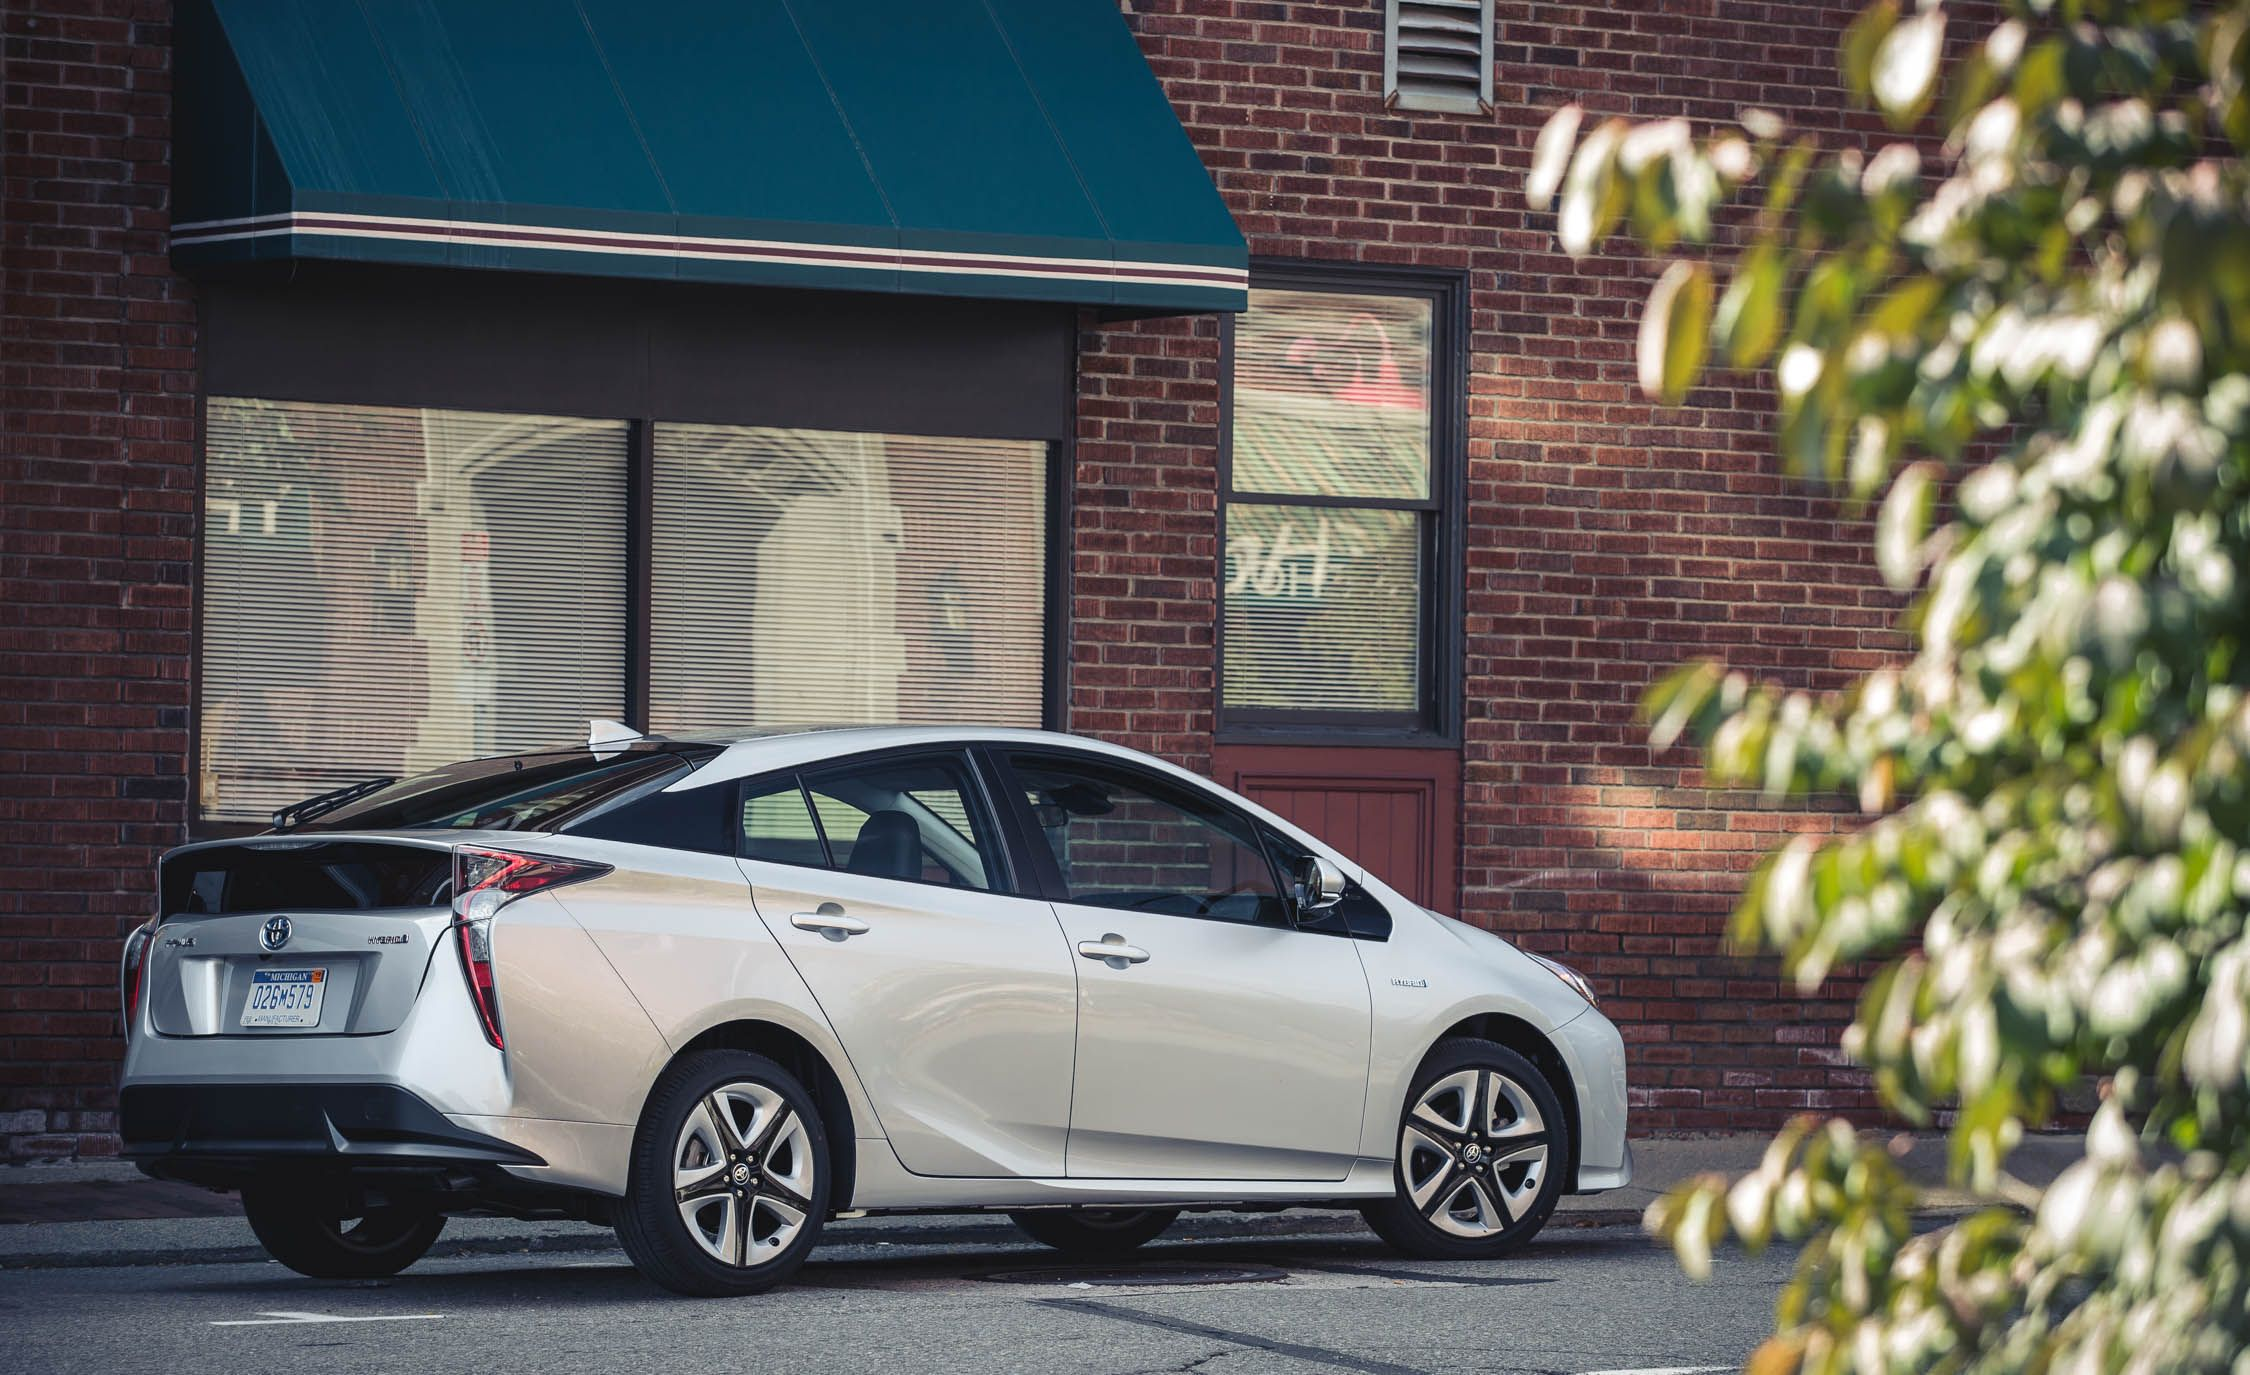 2018 toyota prius interior review car and driver rh caranddriver com toyota prius interior photos toyota prius interior photos